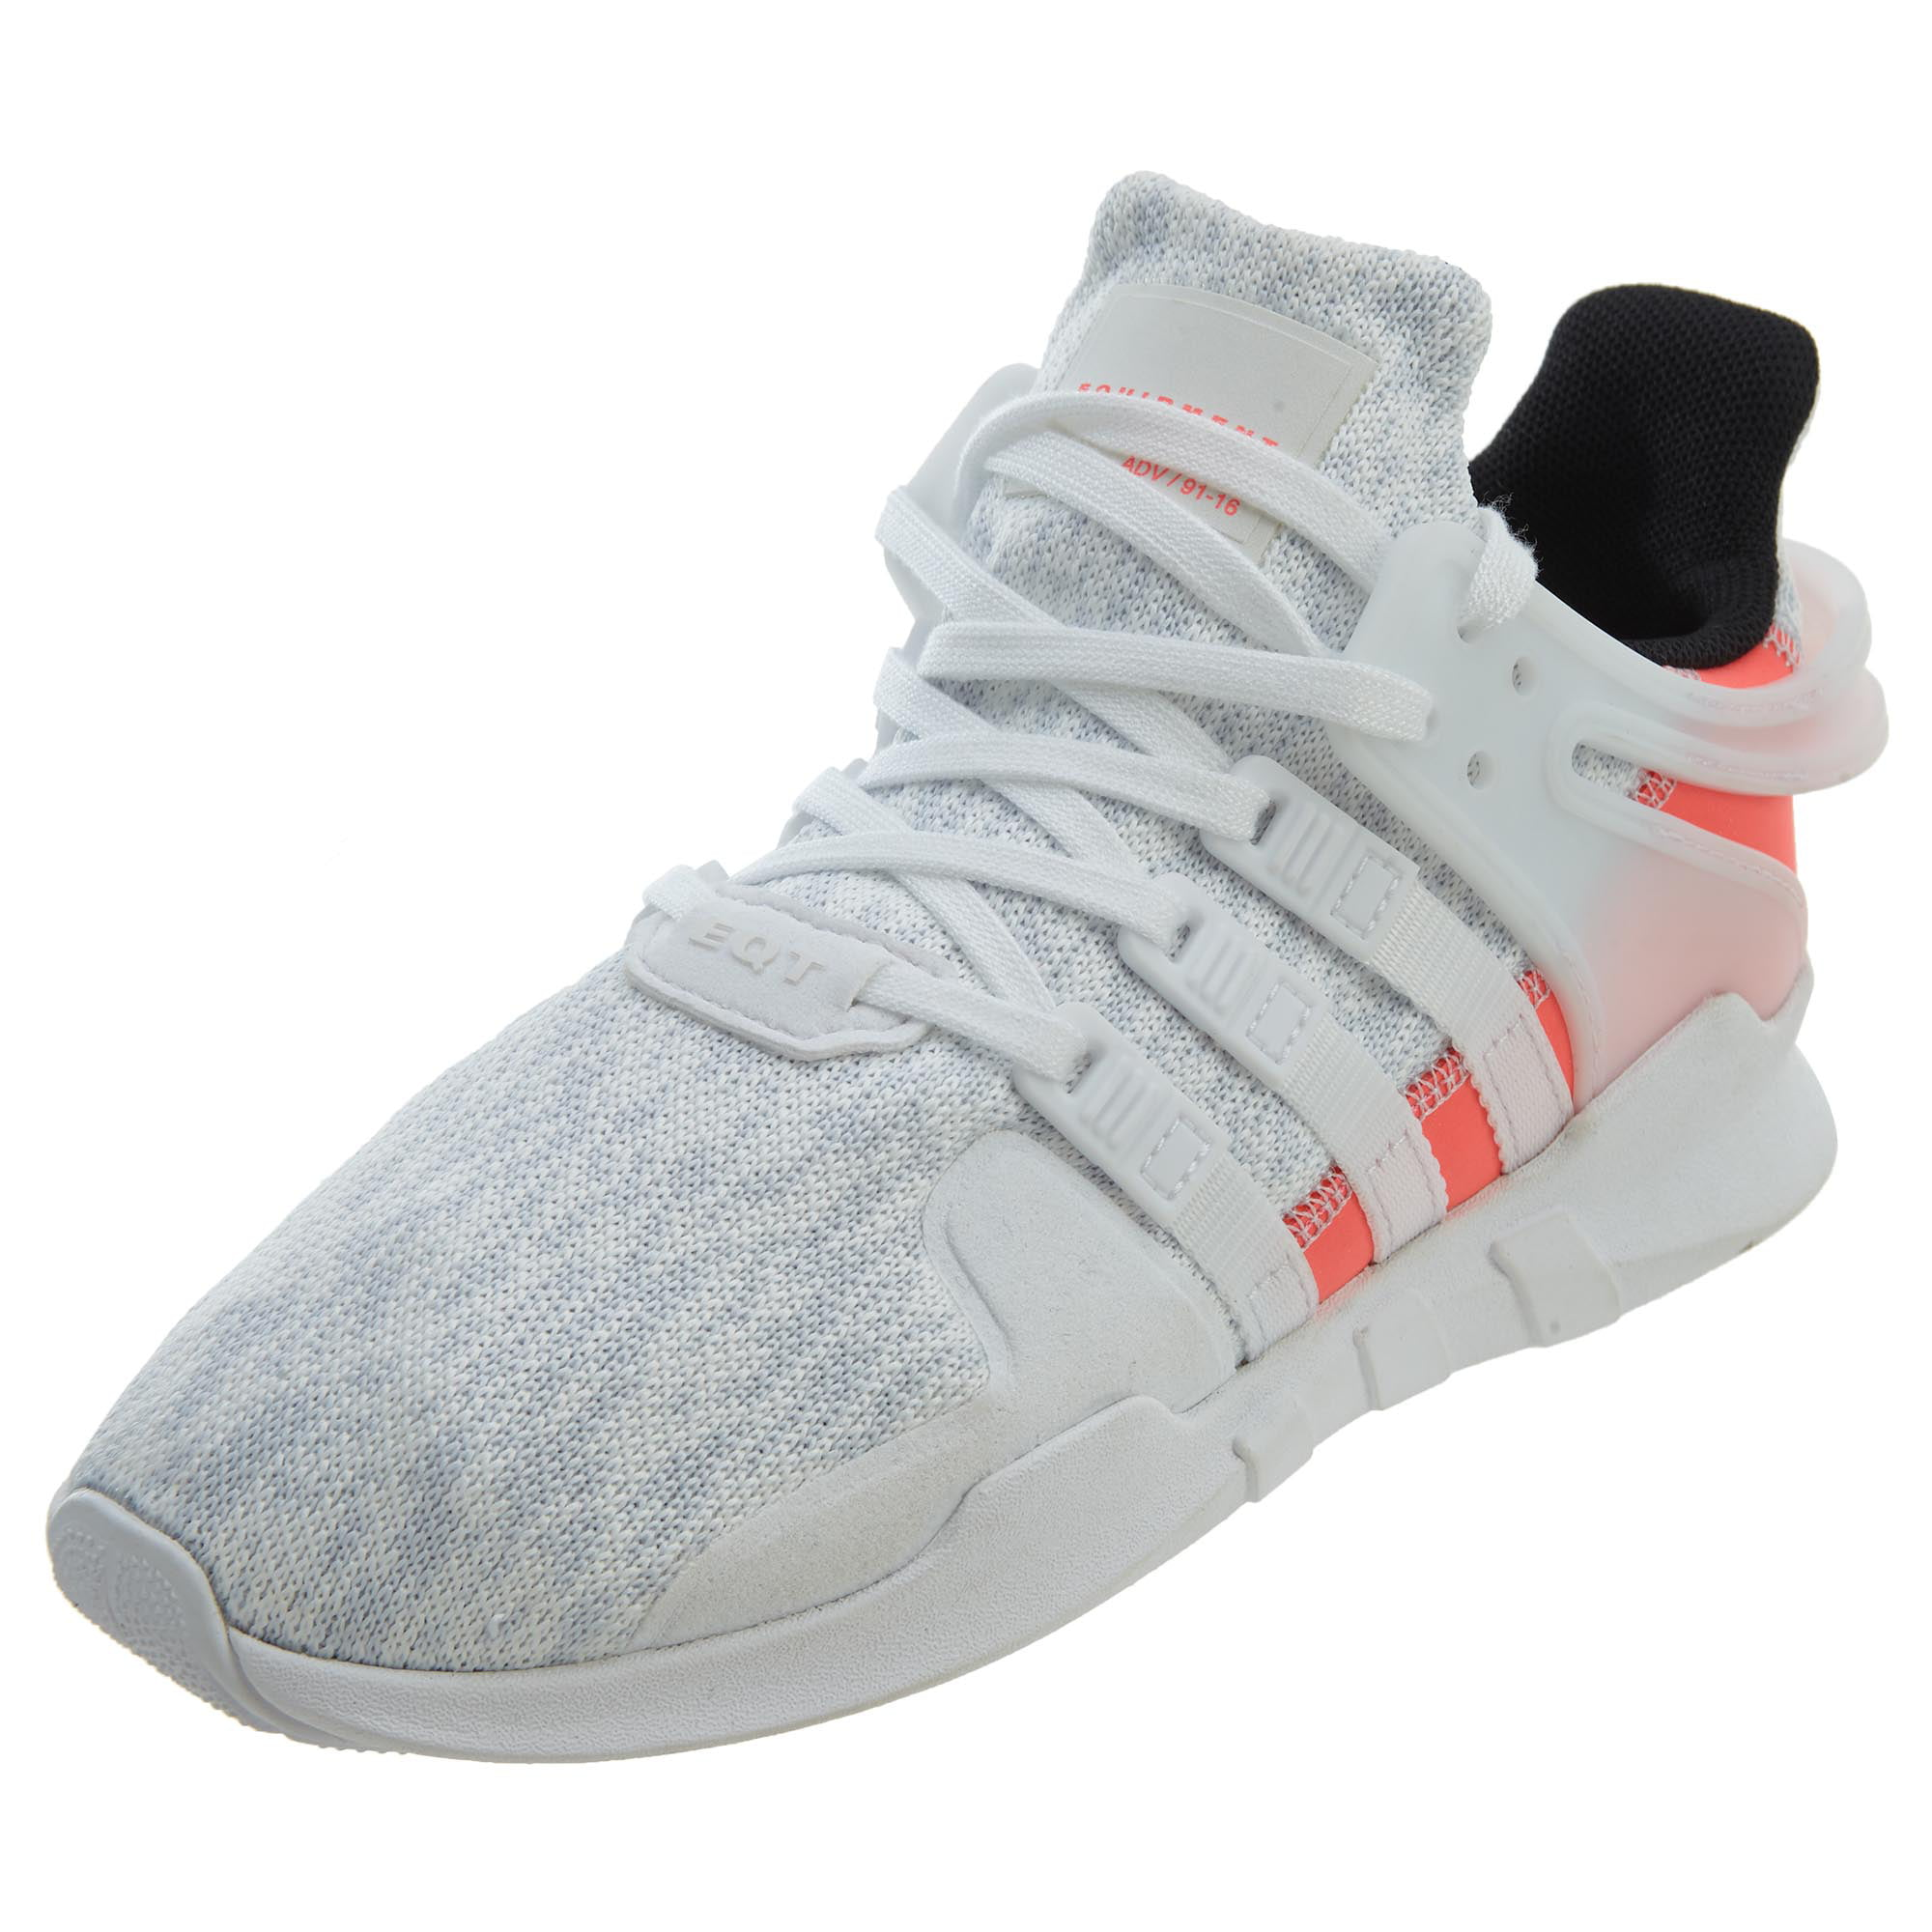 Adidas Eqt Support Adv Little Kids Style : Bb0545 by